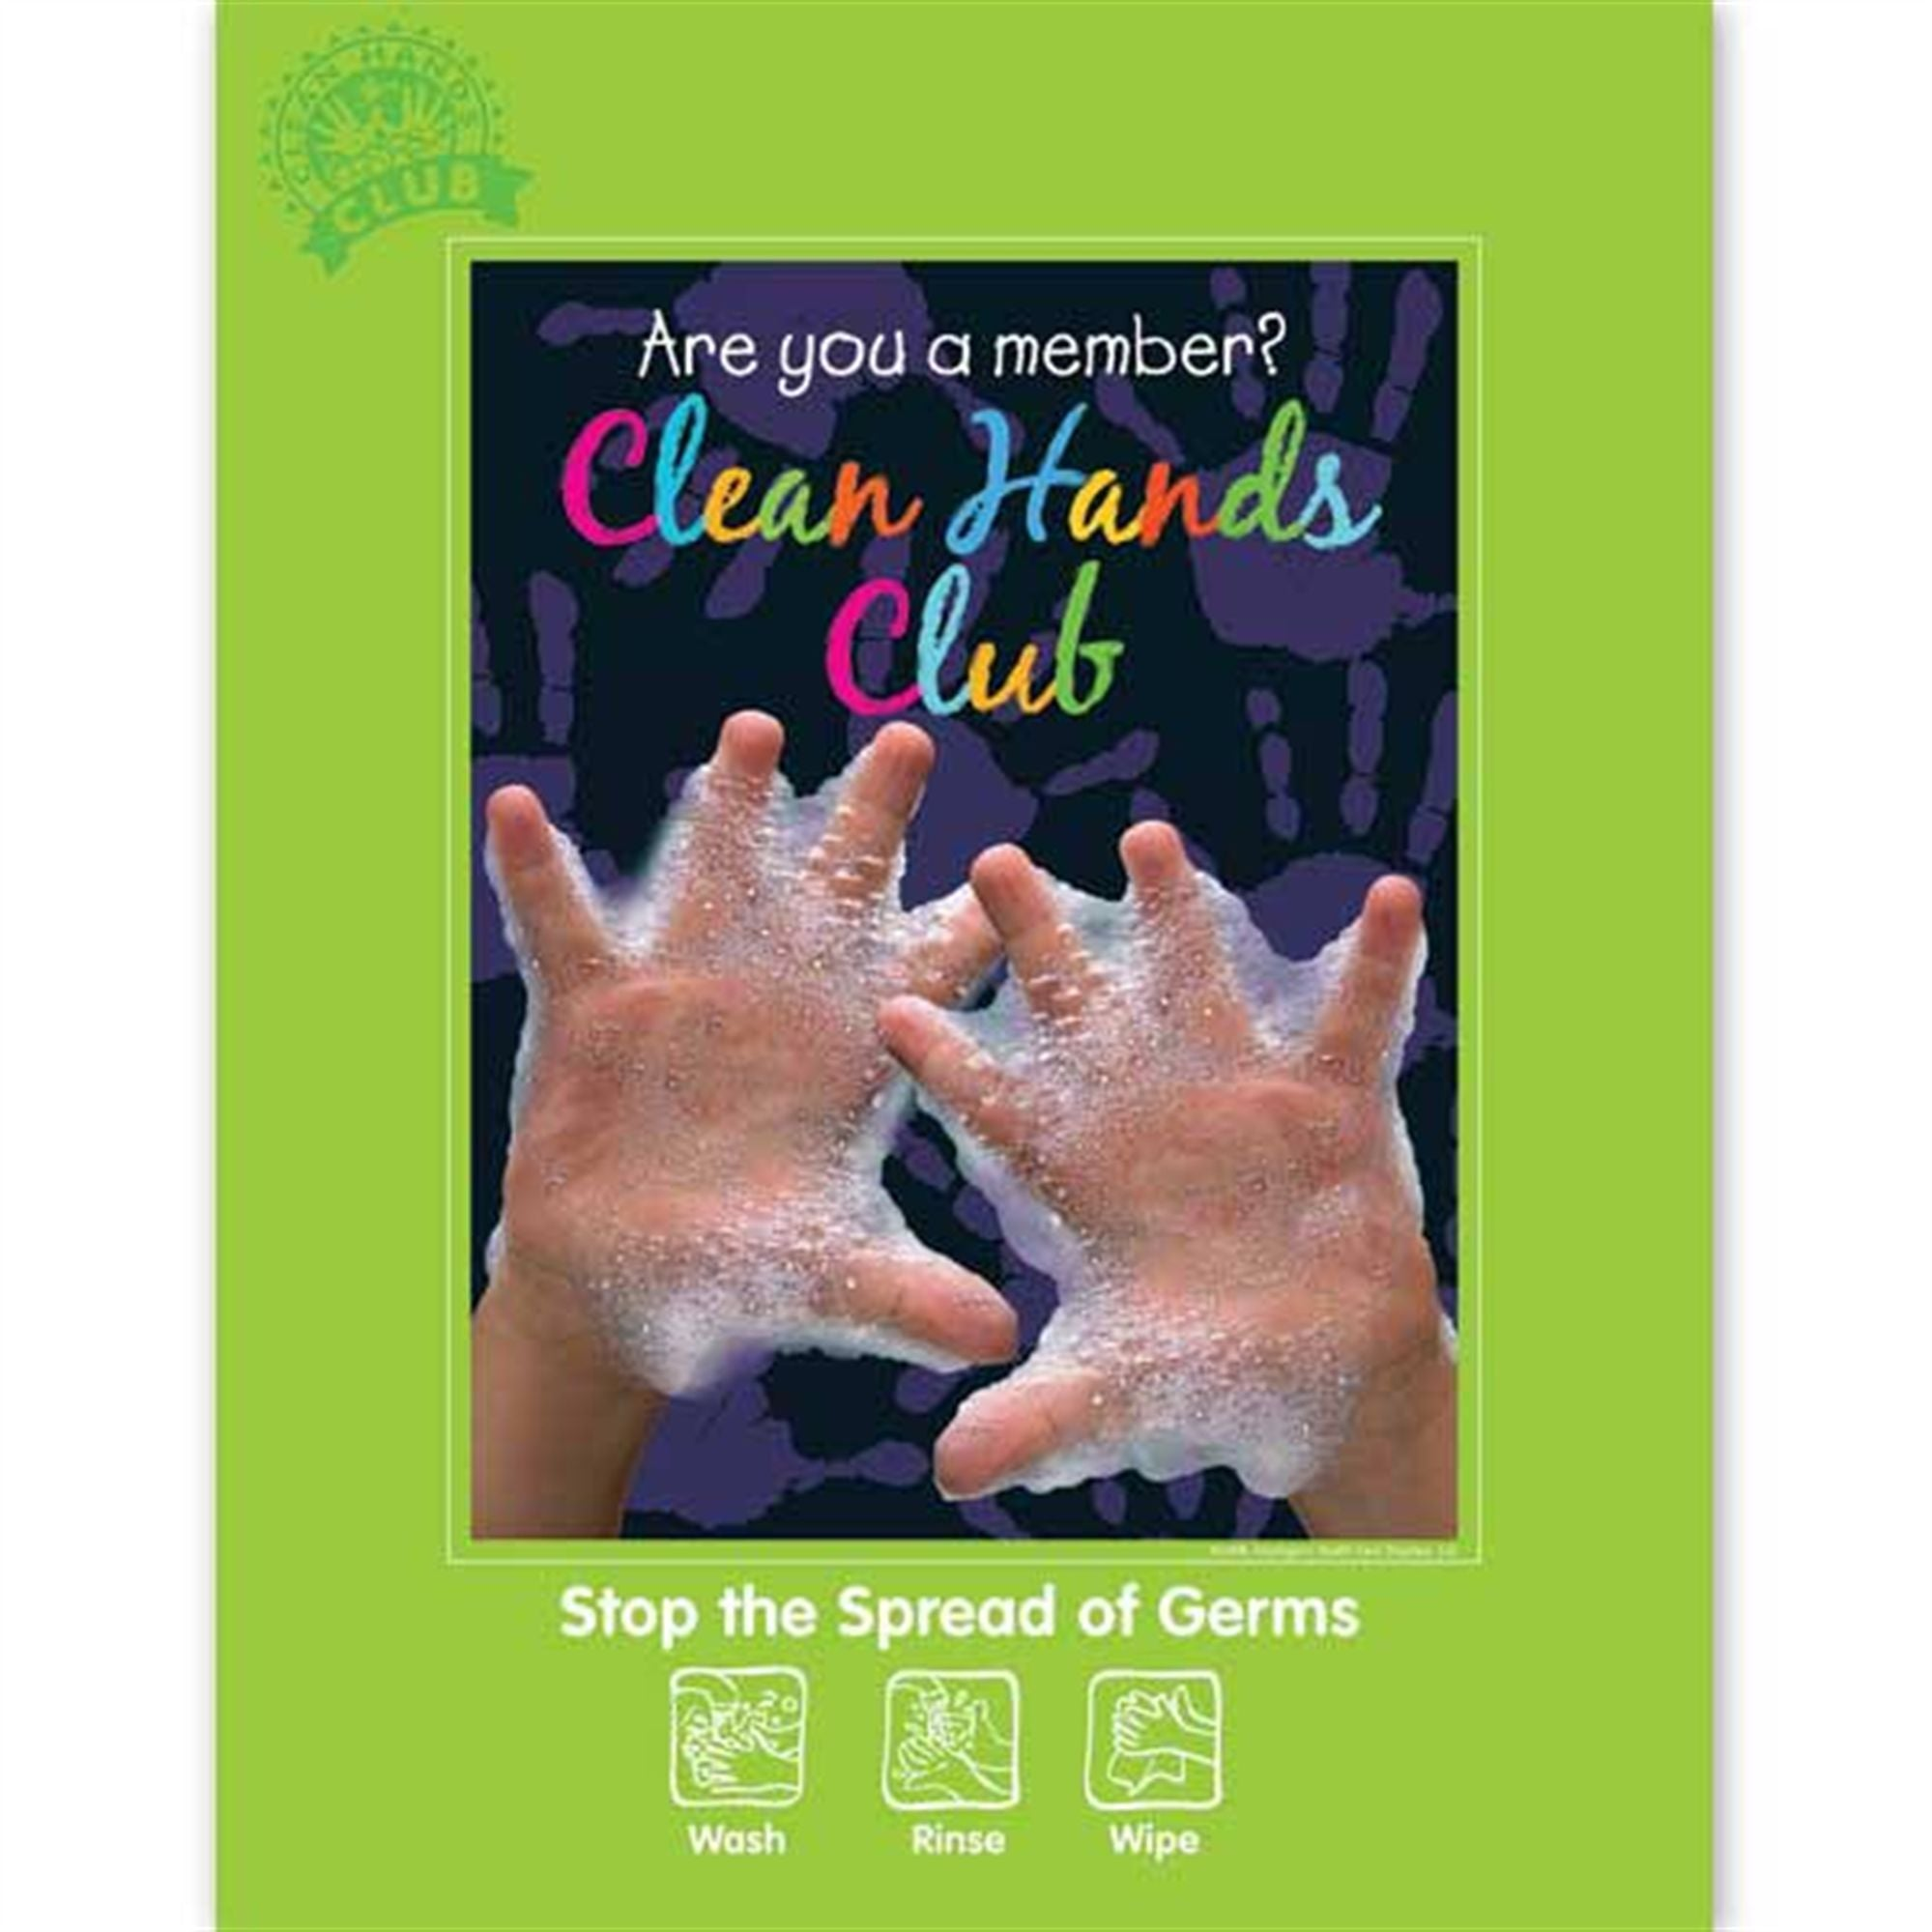 Clean Hands Club Hygiene Poster